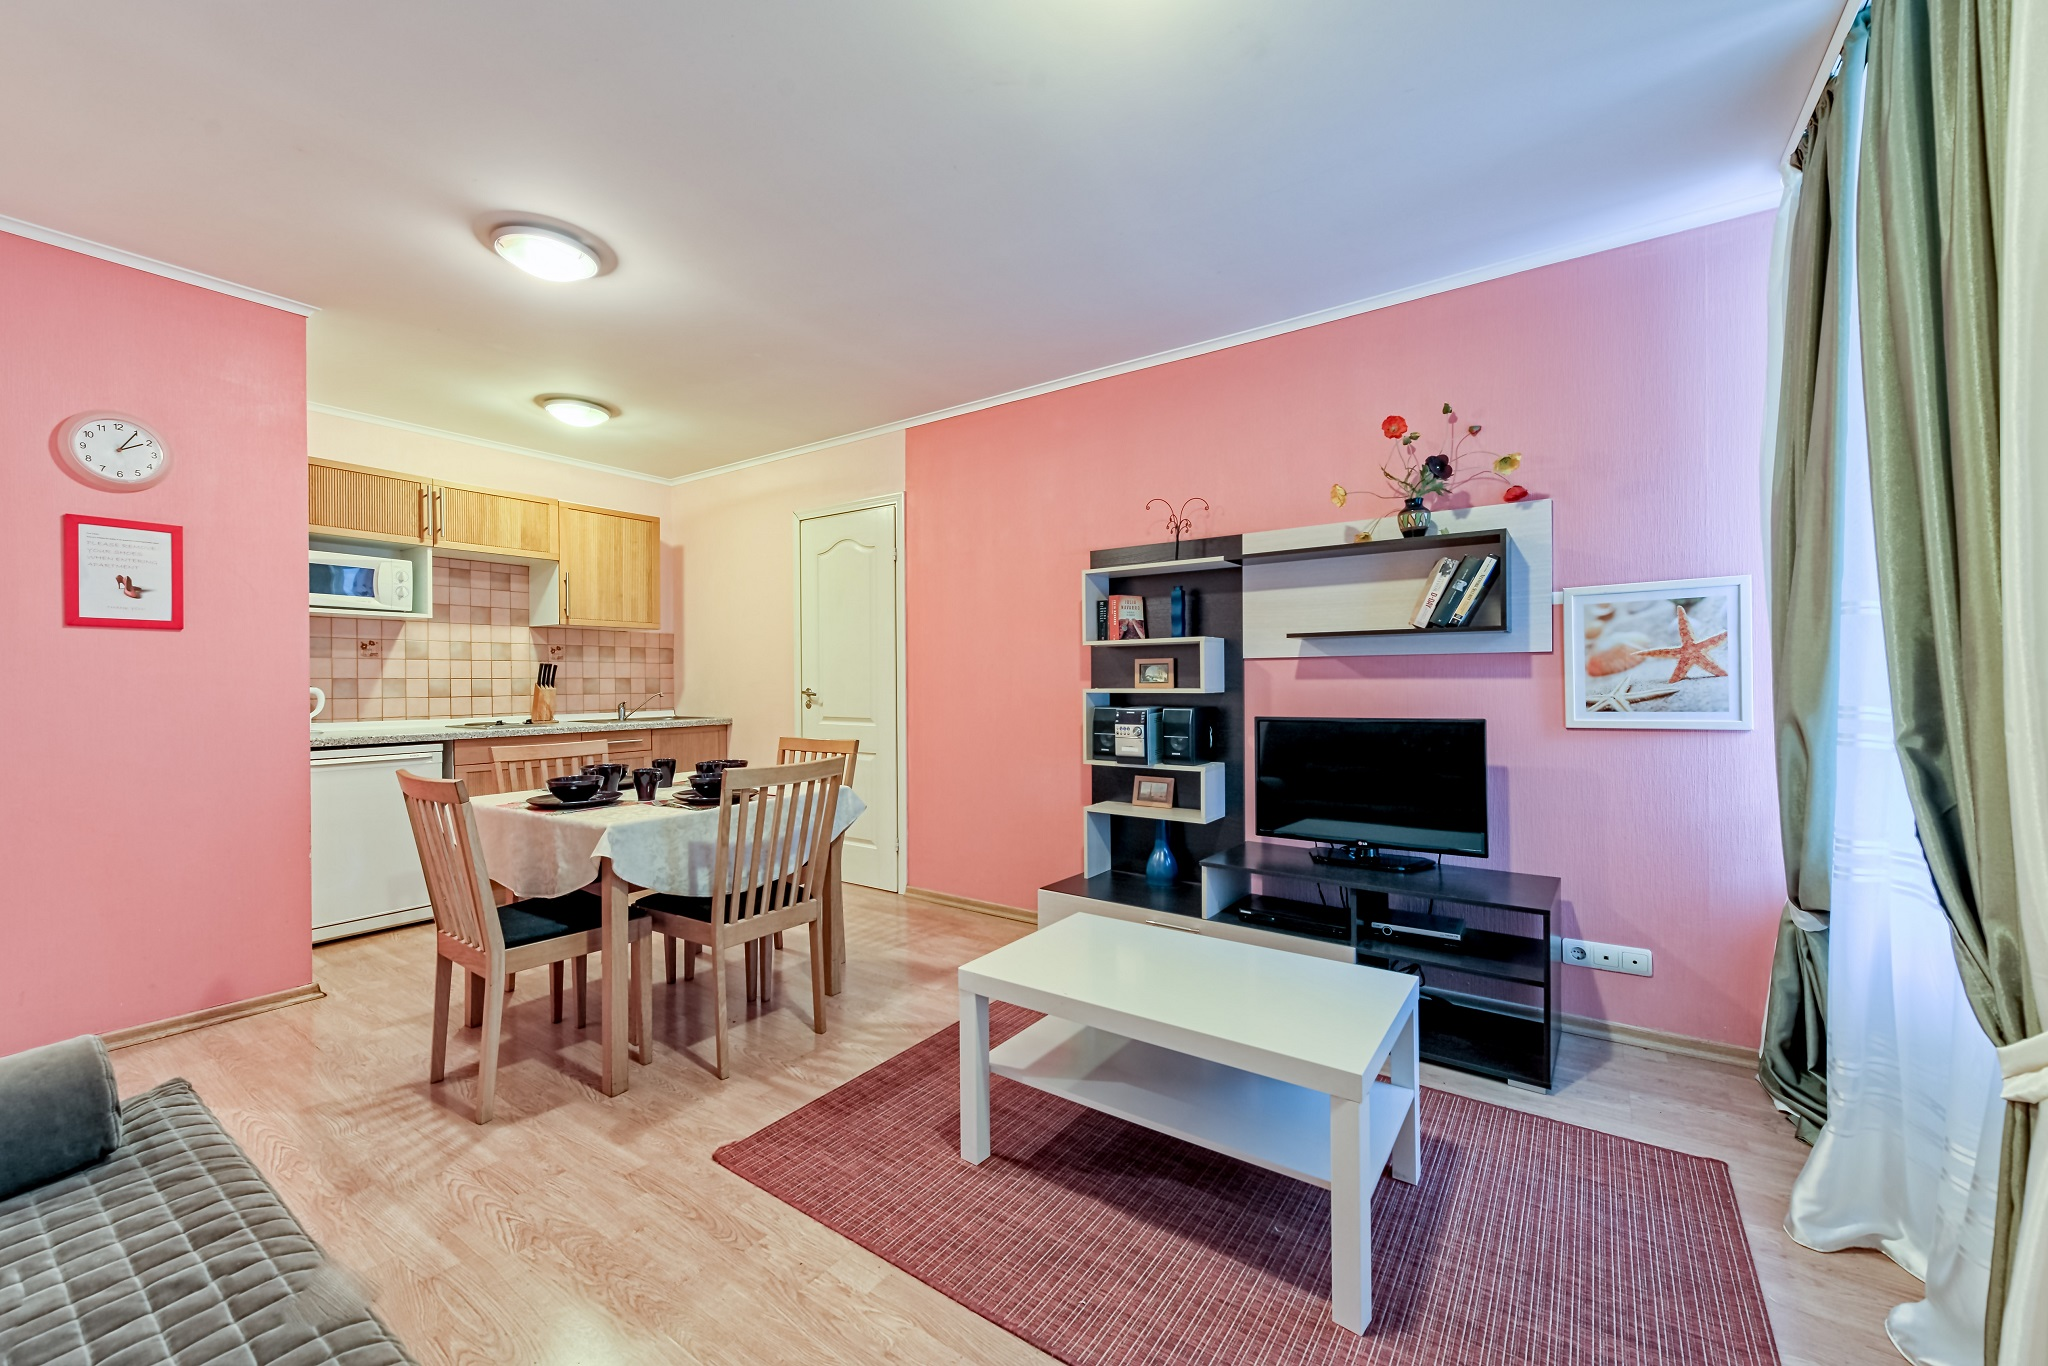 Apartments In St Petersburg Russia Visas Tours Apartment